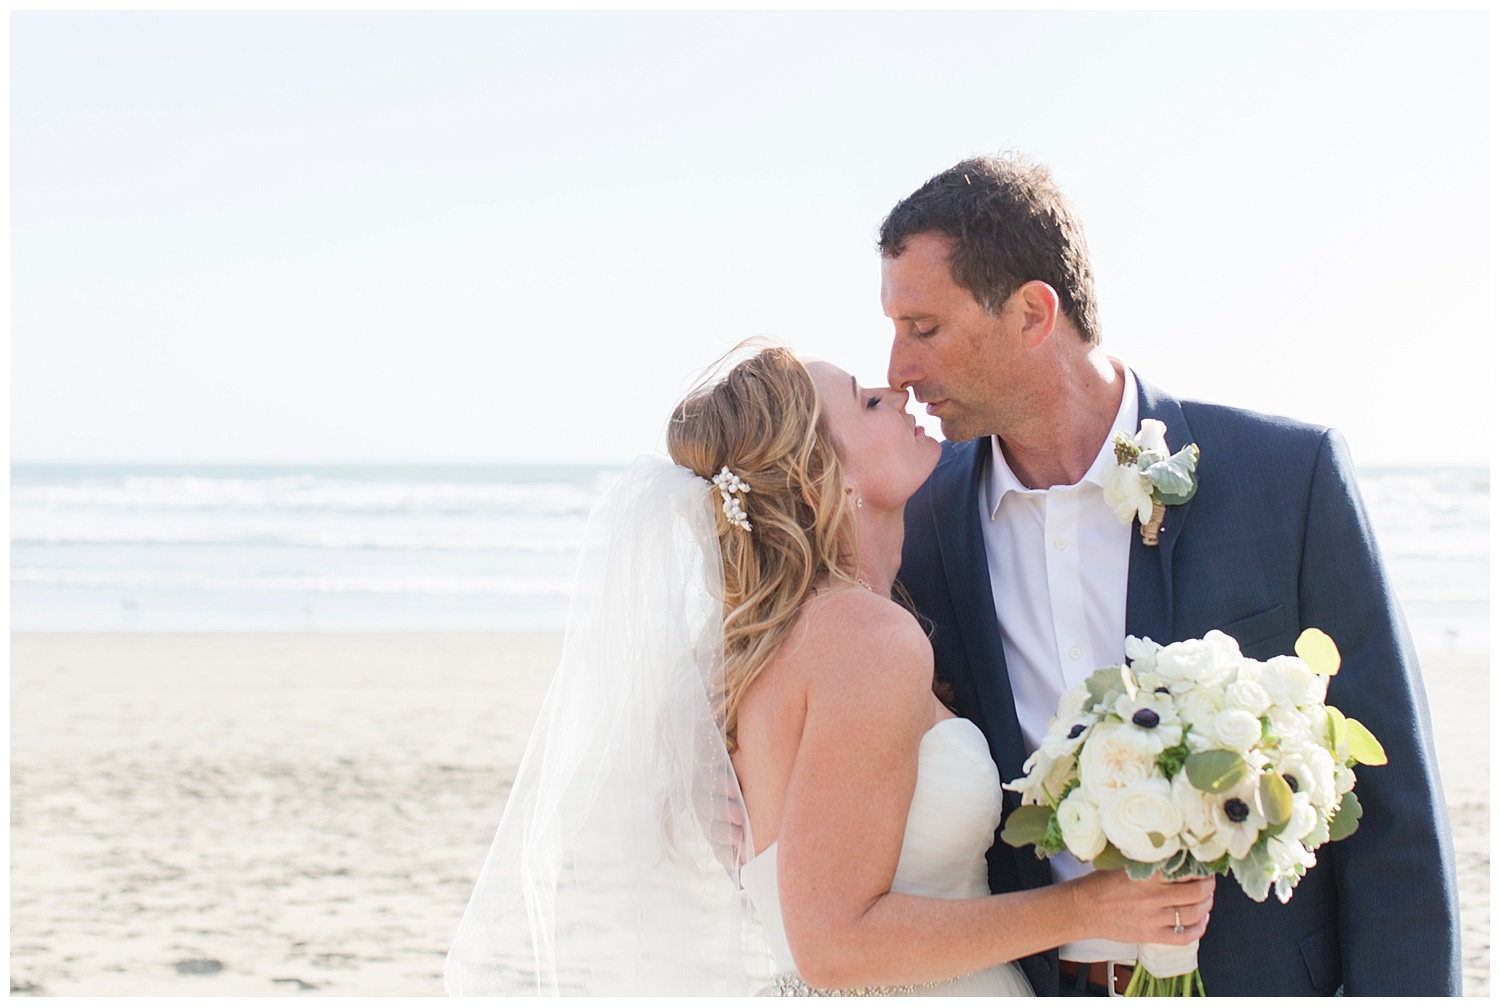 Malzone wedding_Beach wedding_Renoda Campbell Photography-6167.jpg